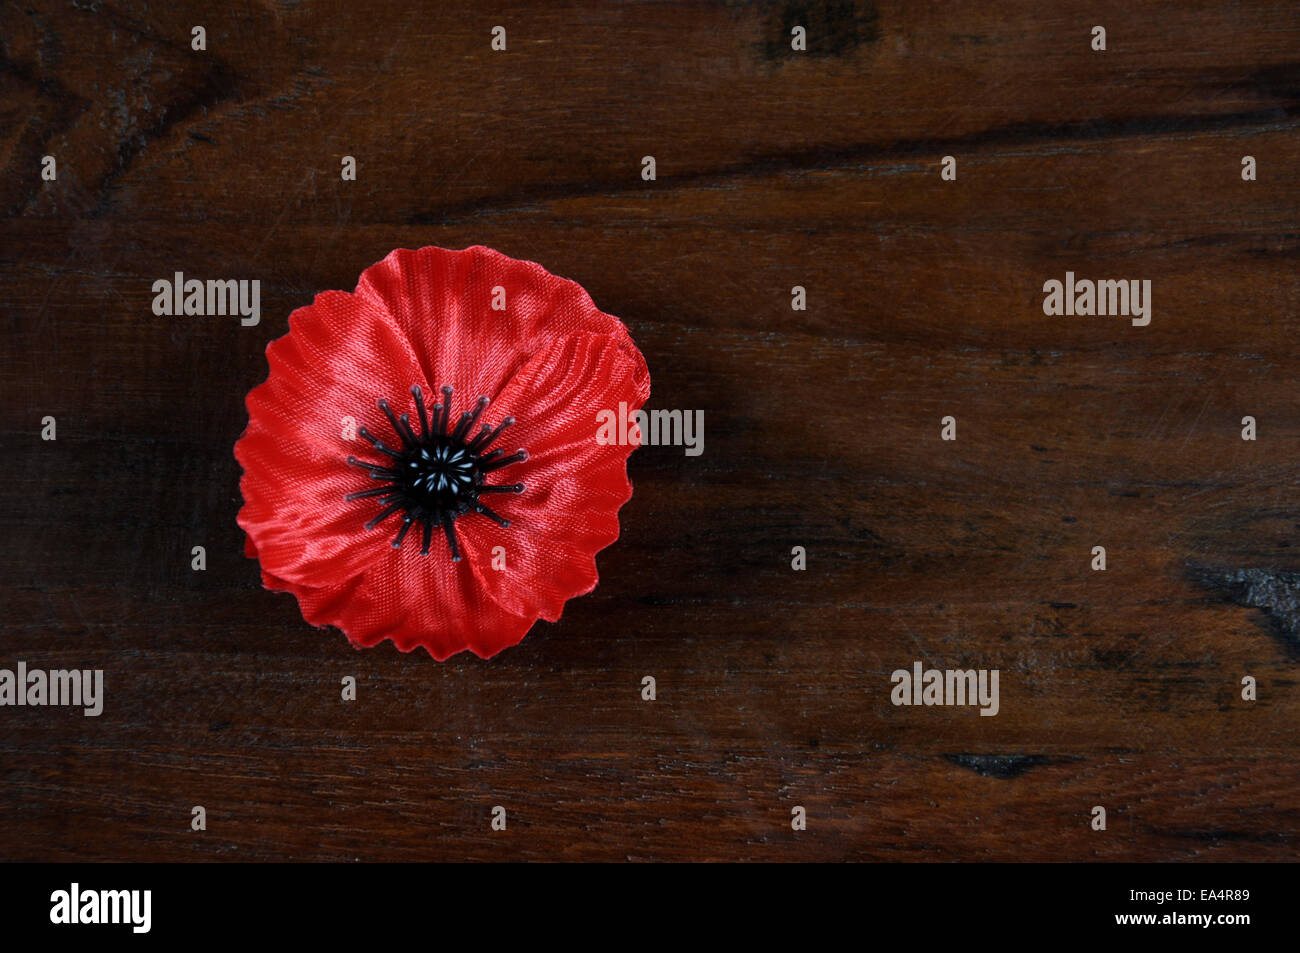 Lest We Forget Red Flanders Poppy Lapel Pin Badge For November 11